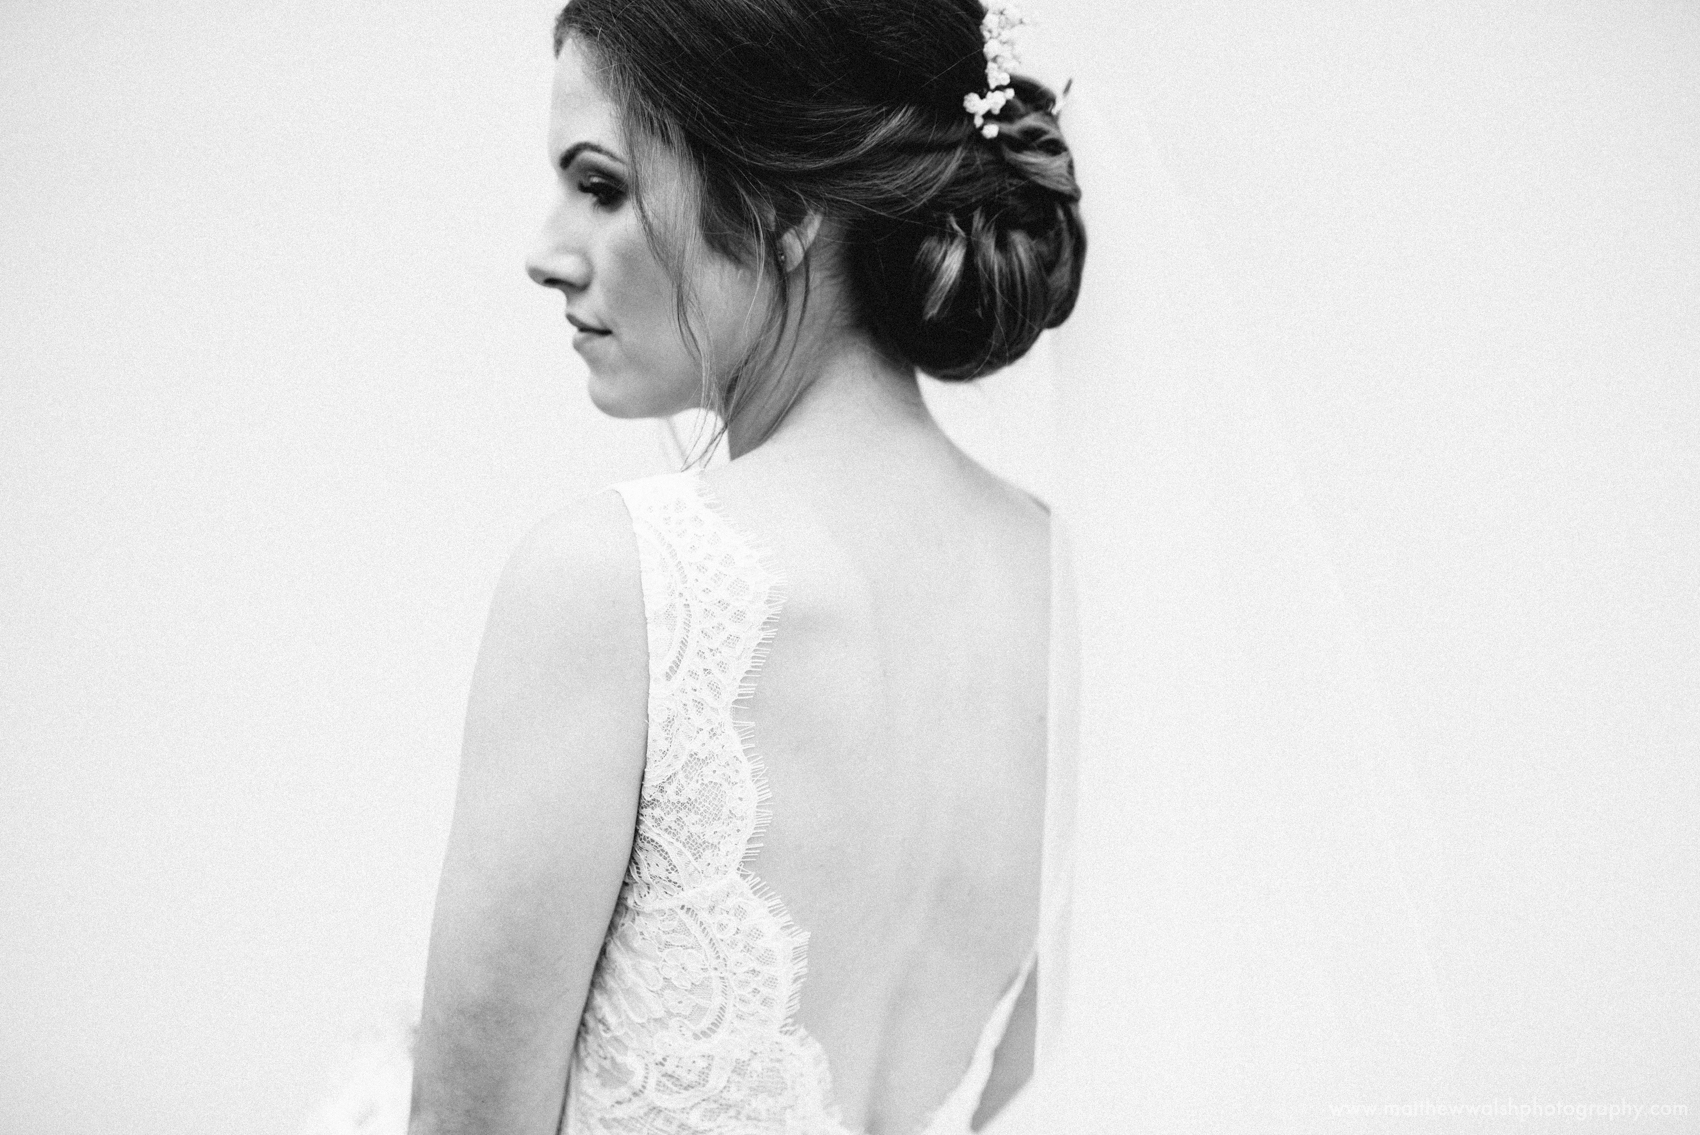 A detail of the back of the brides dress as she looks over her shoulder